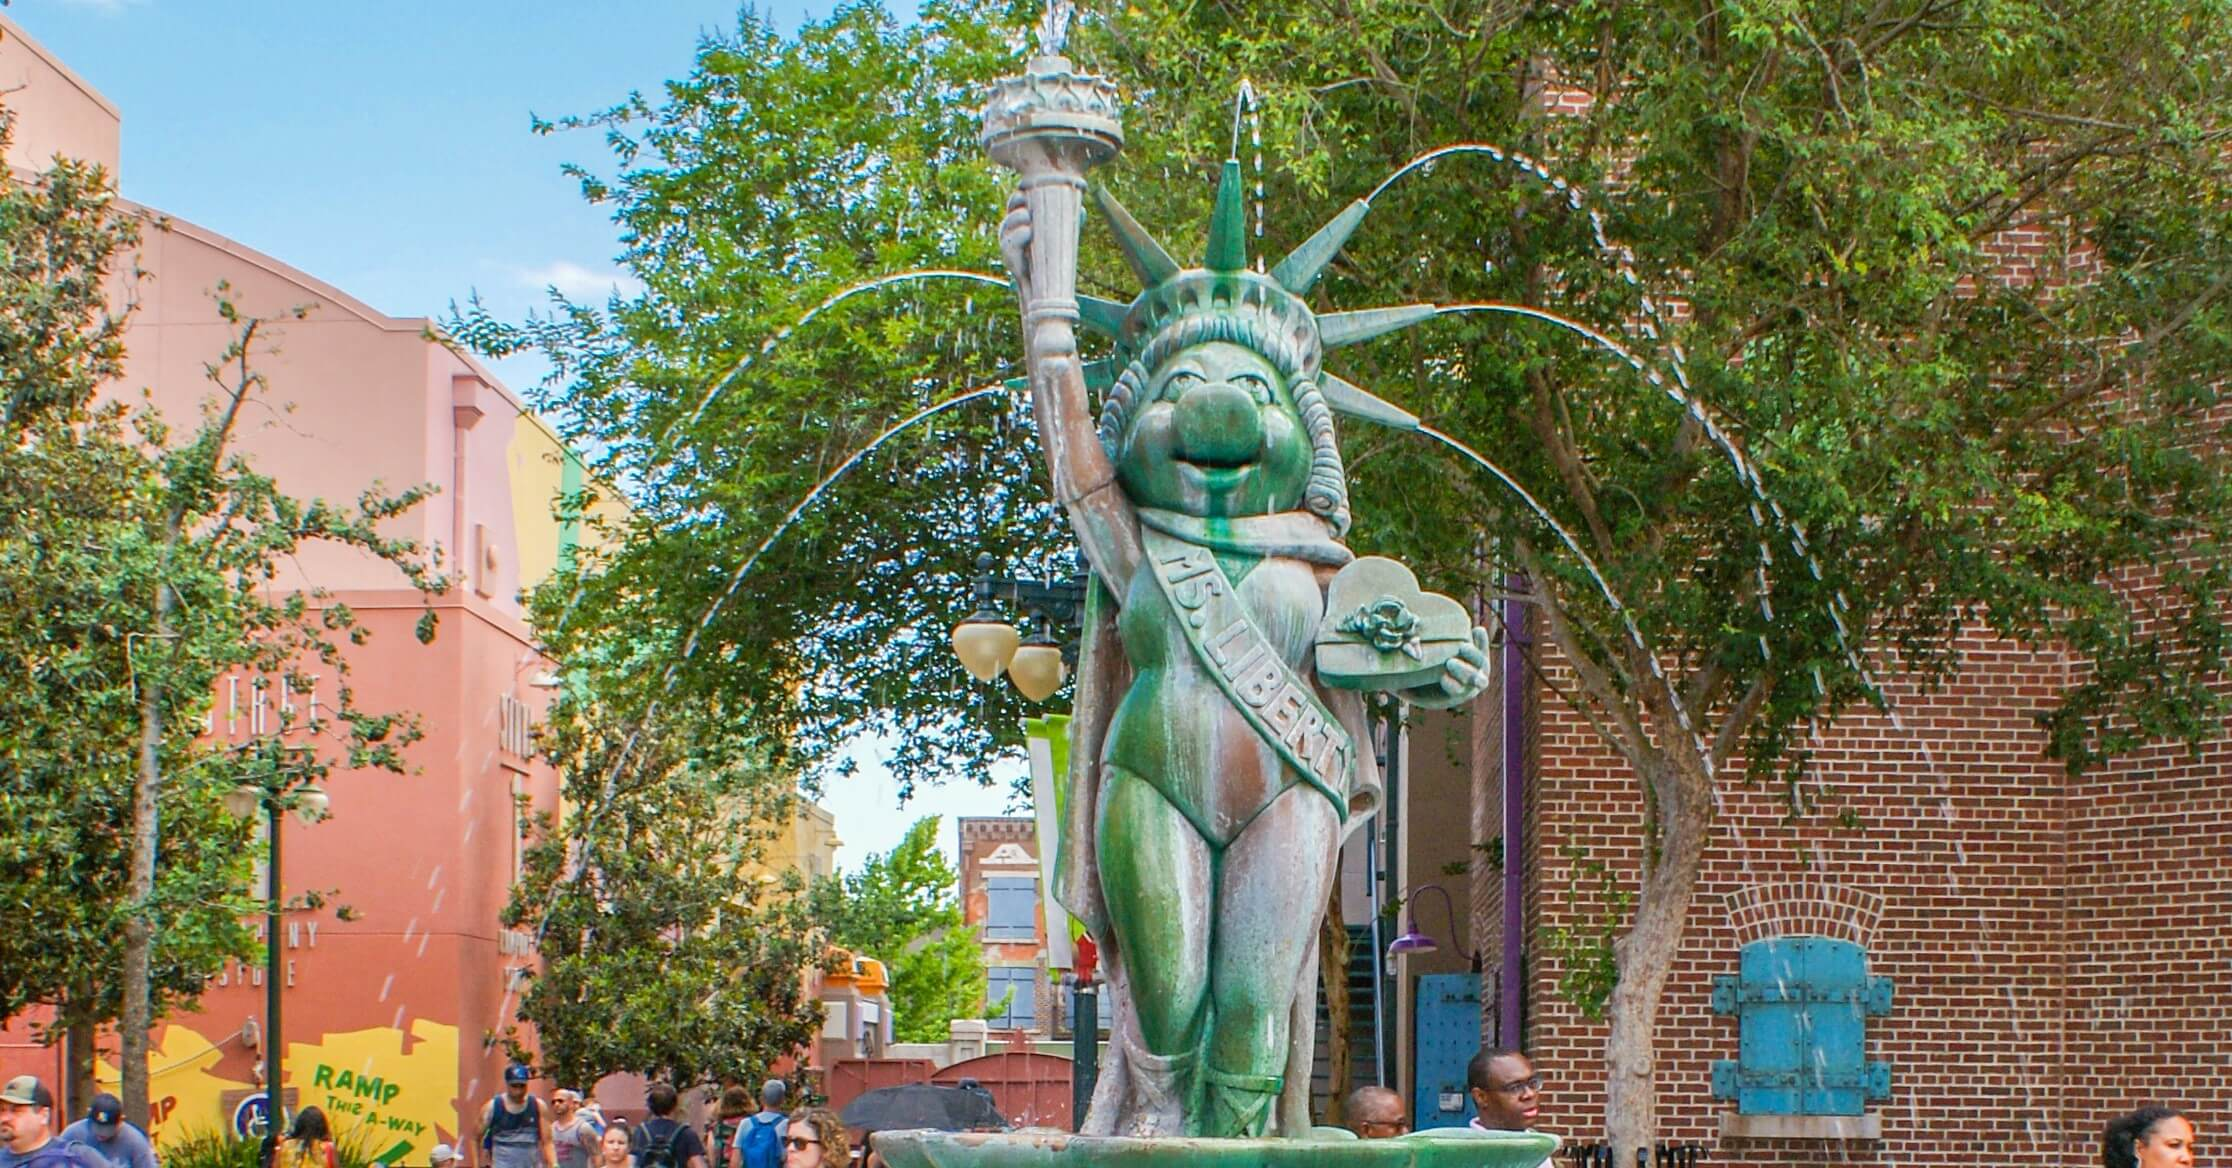 Miss Piggy als Ms. Liberty (Freiheitsstatue) in der Grand Avenue am Muppet Plaza